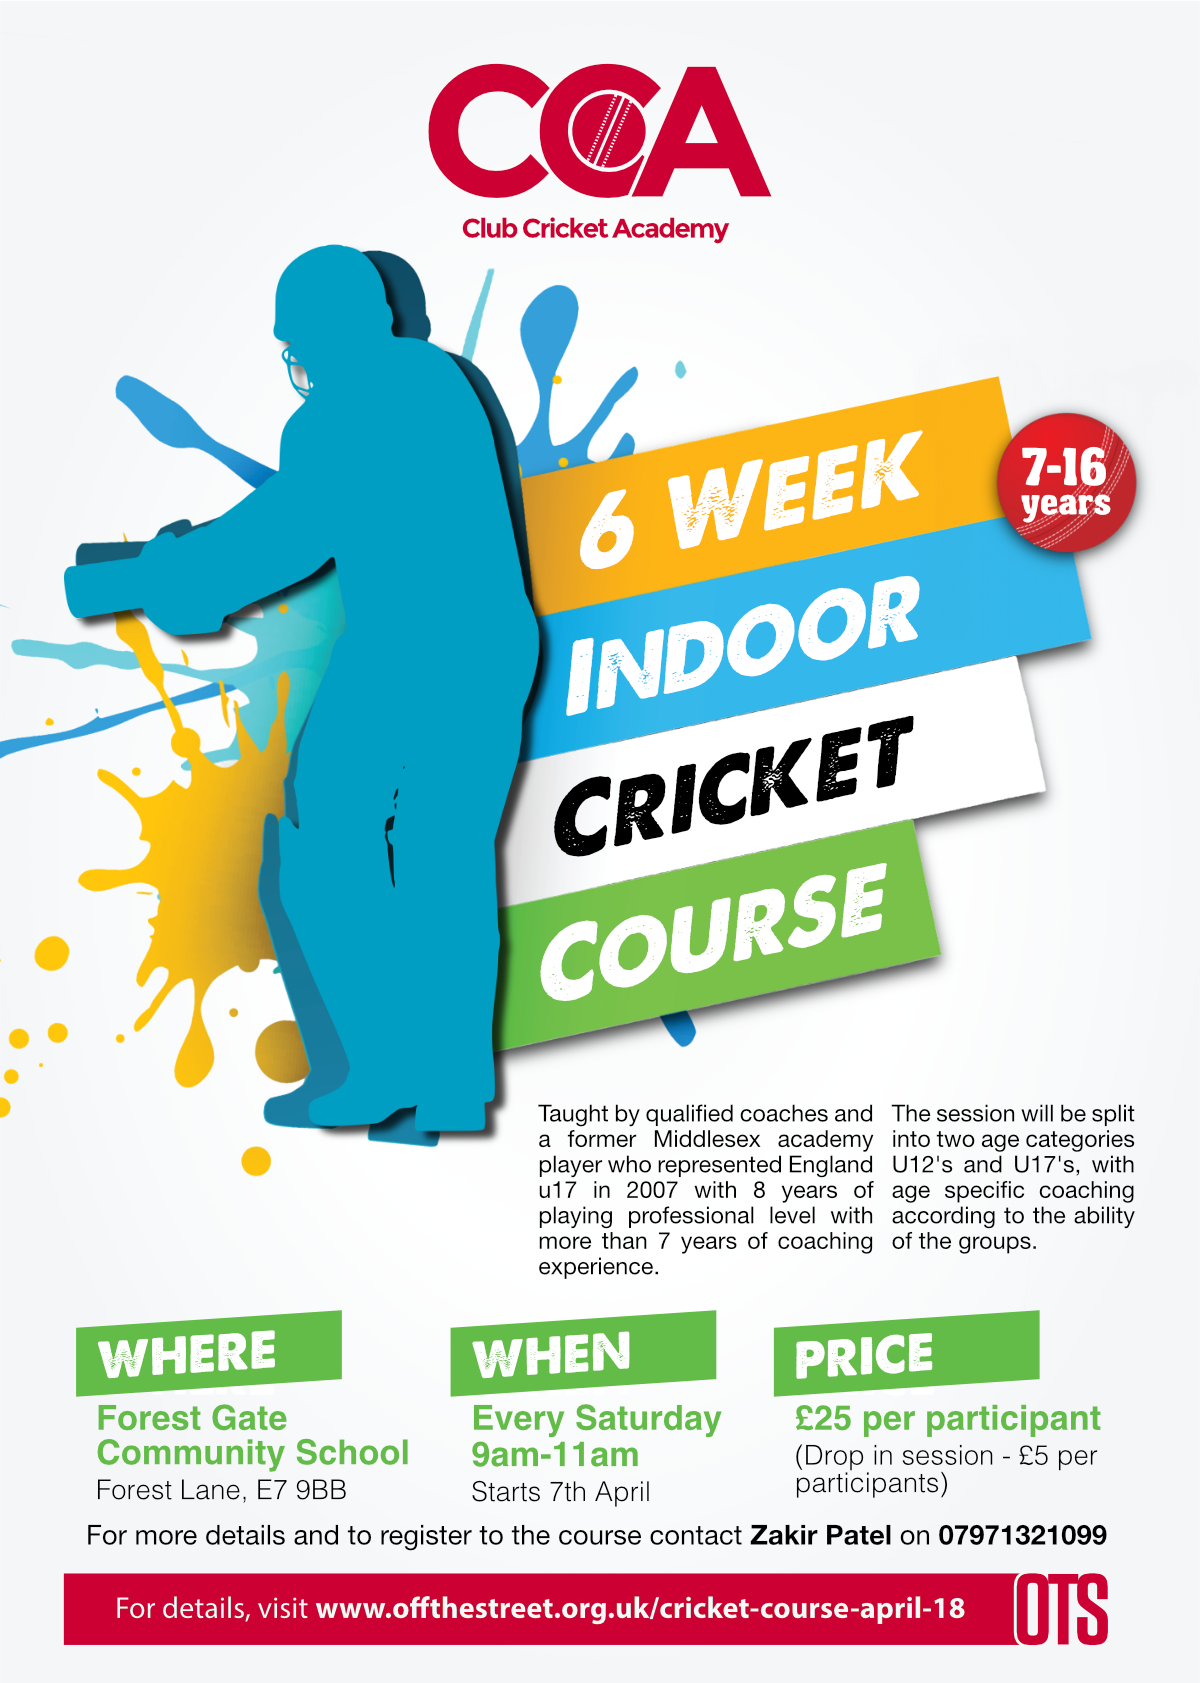 CCA Cricket Course April 2018 - OFF THE STREET